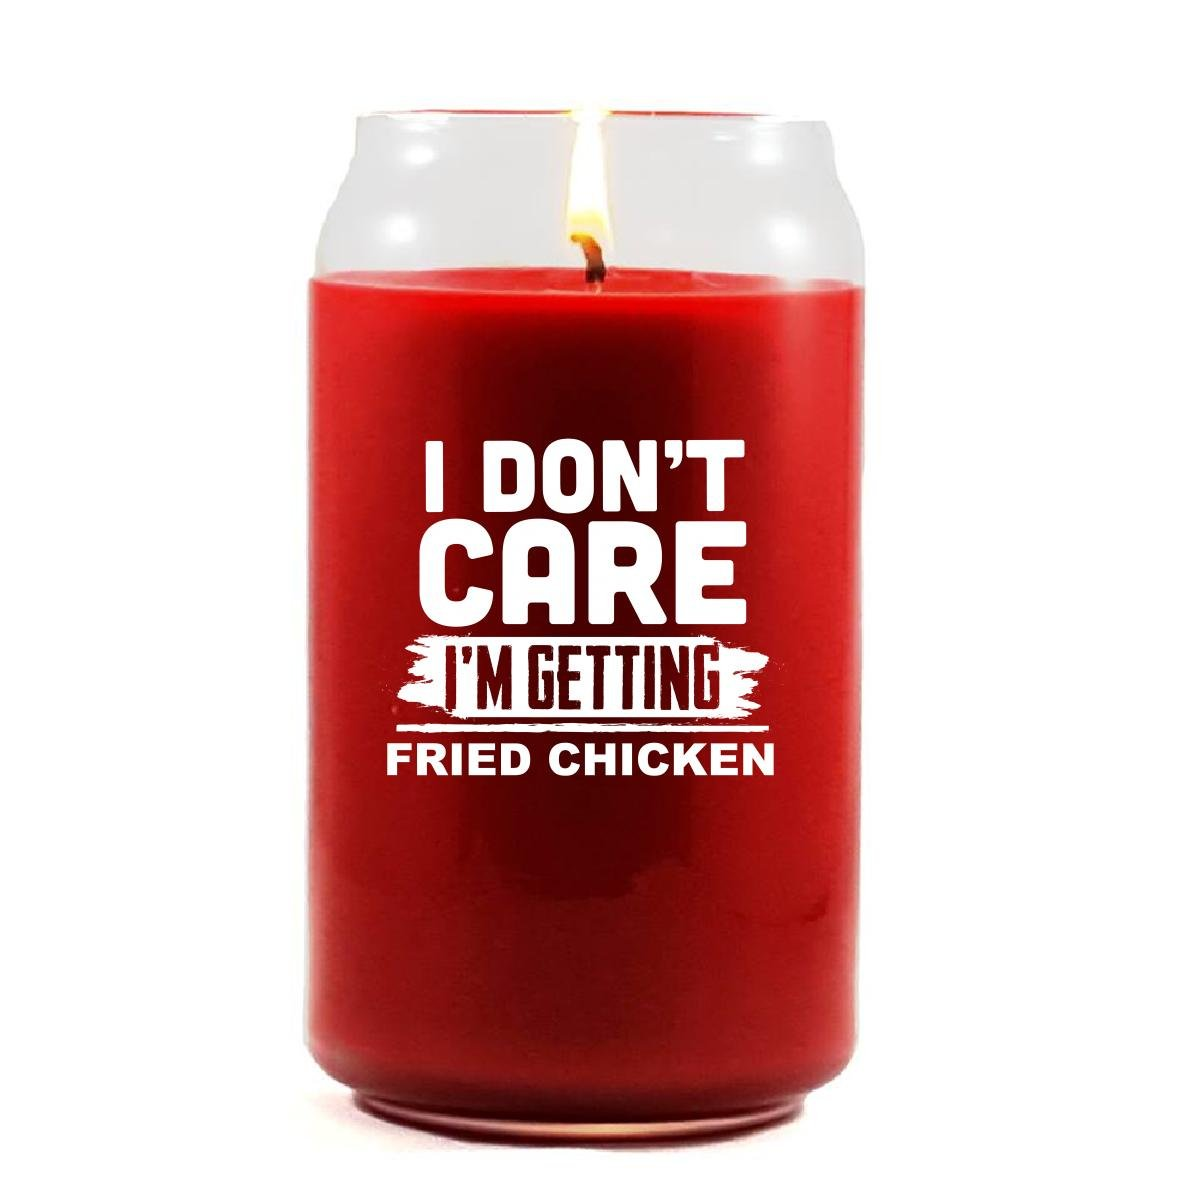 I Don't Care I'm Getting FRIED CHICKEN - Scented Candle